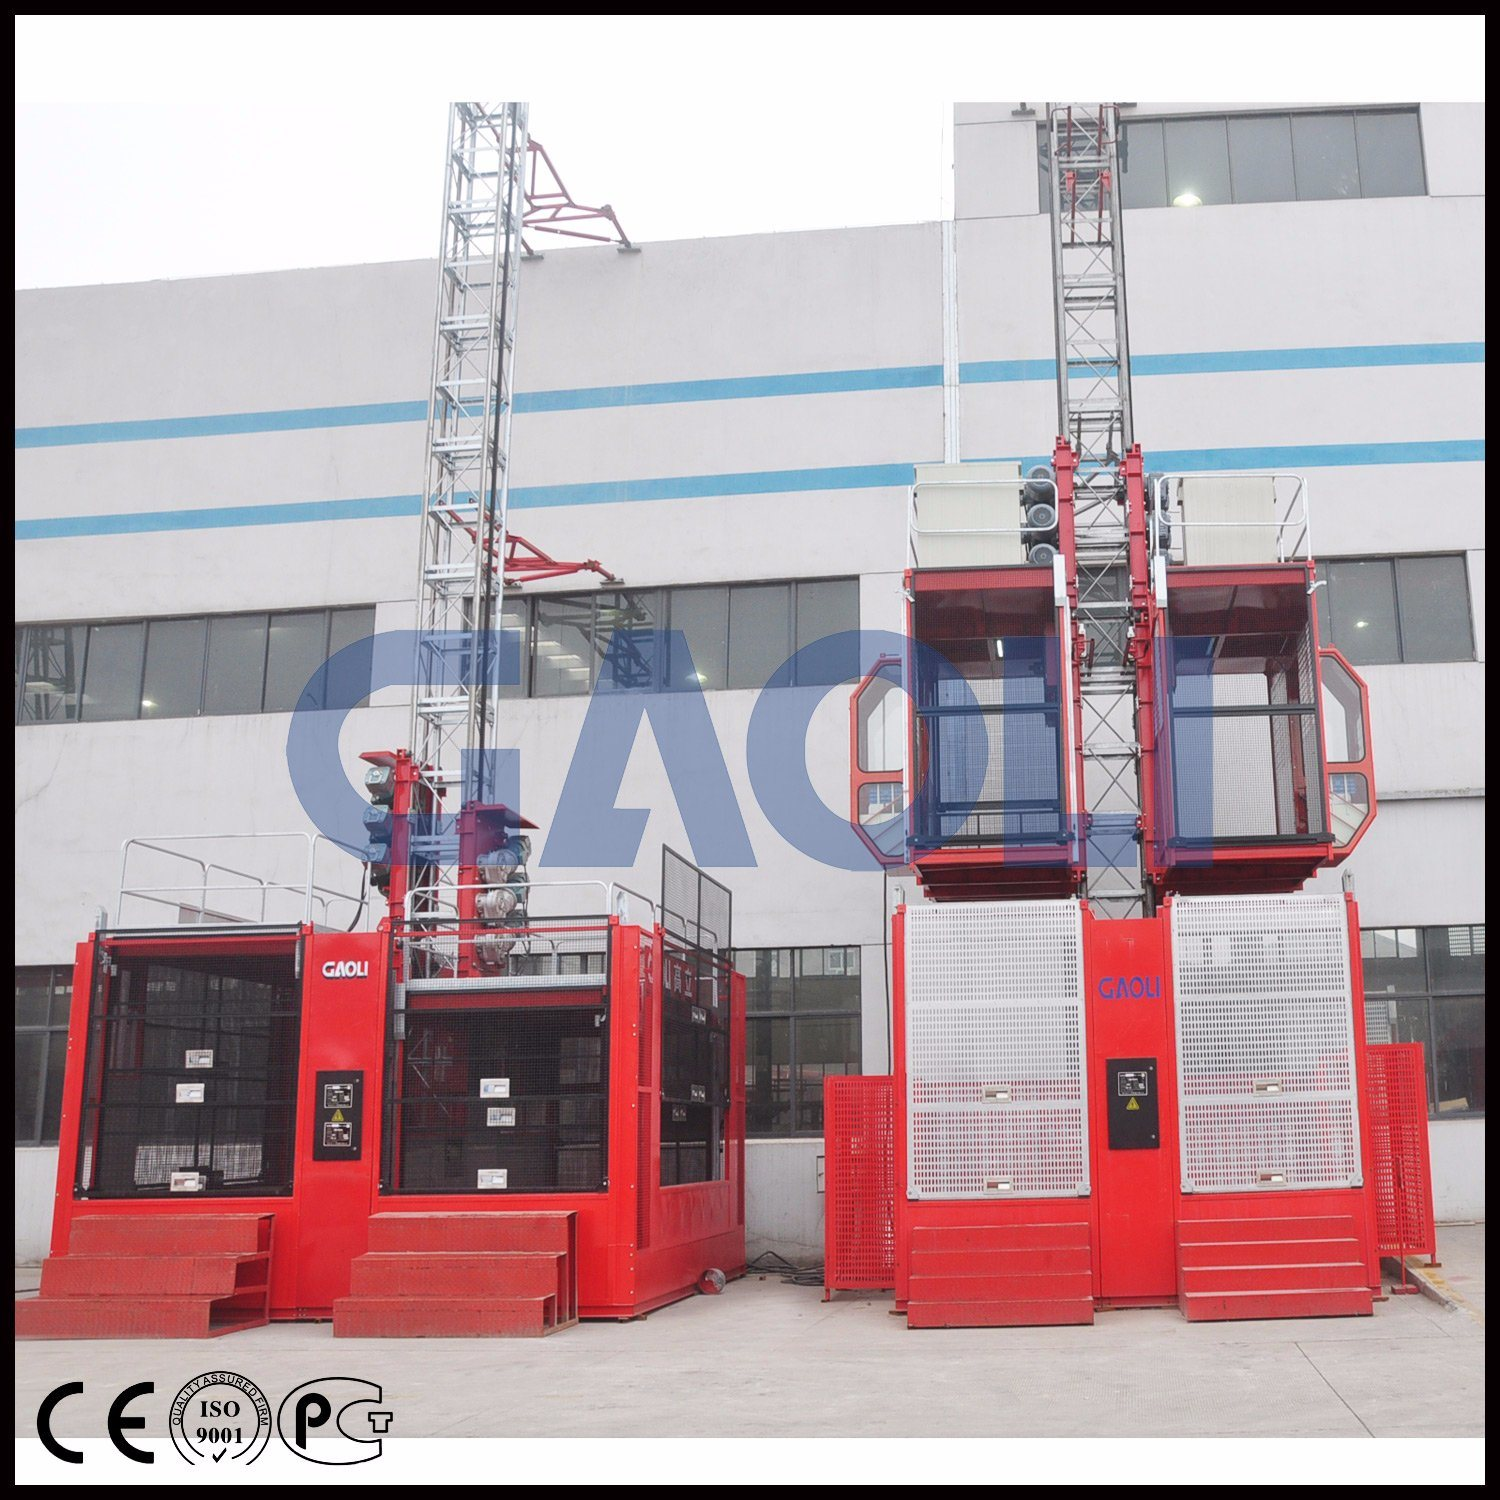 Gaoli Ce Approved Construction Elevator Sc100/100